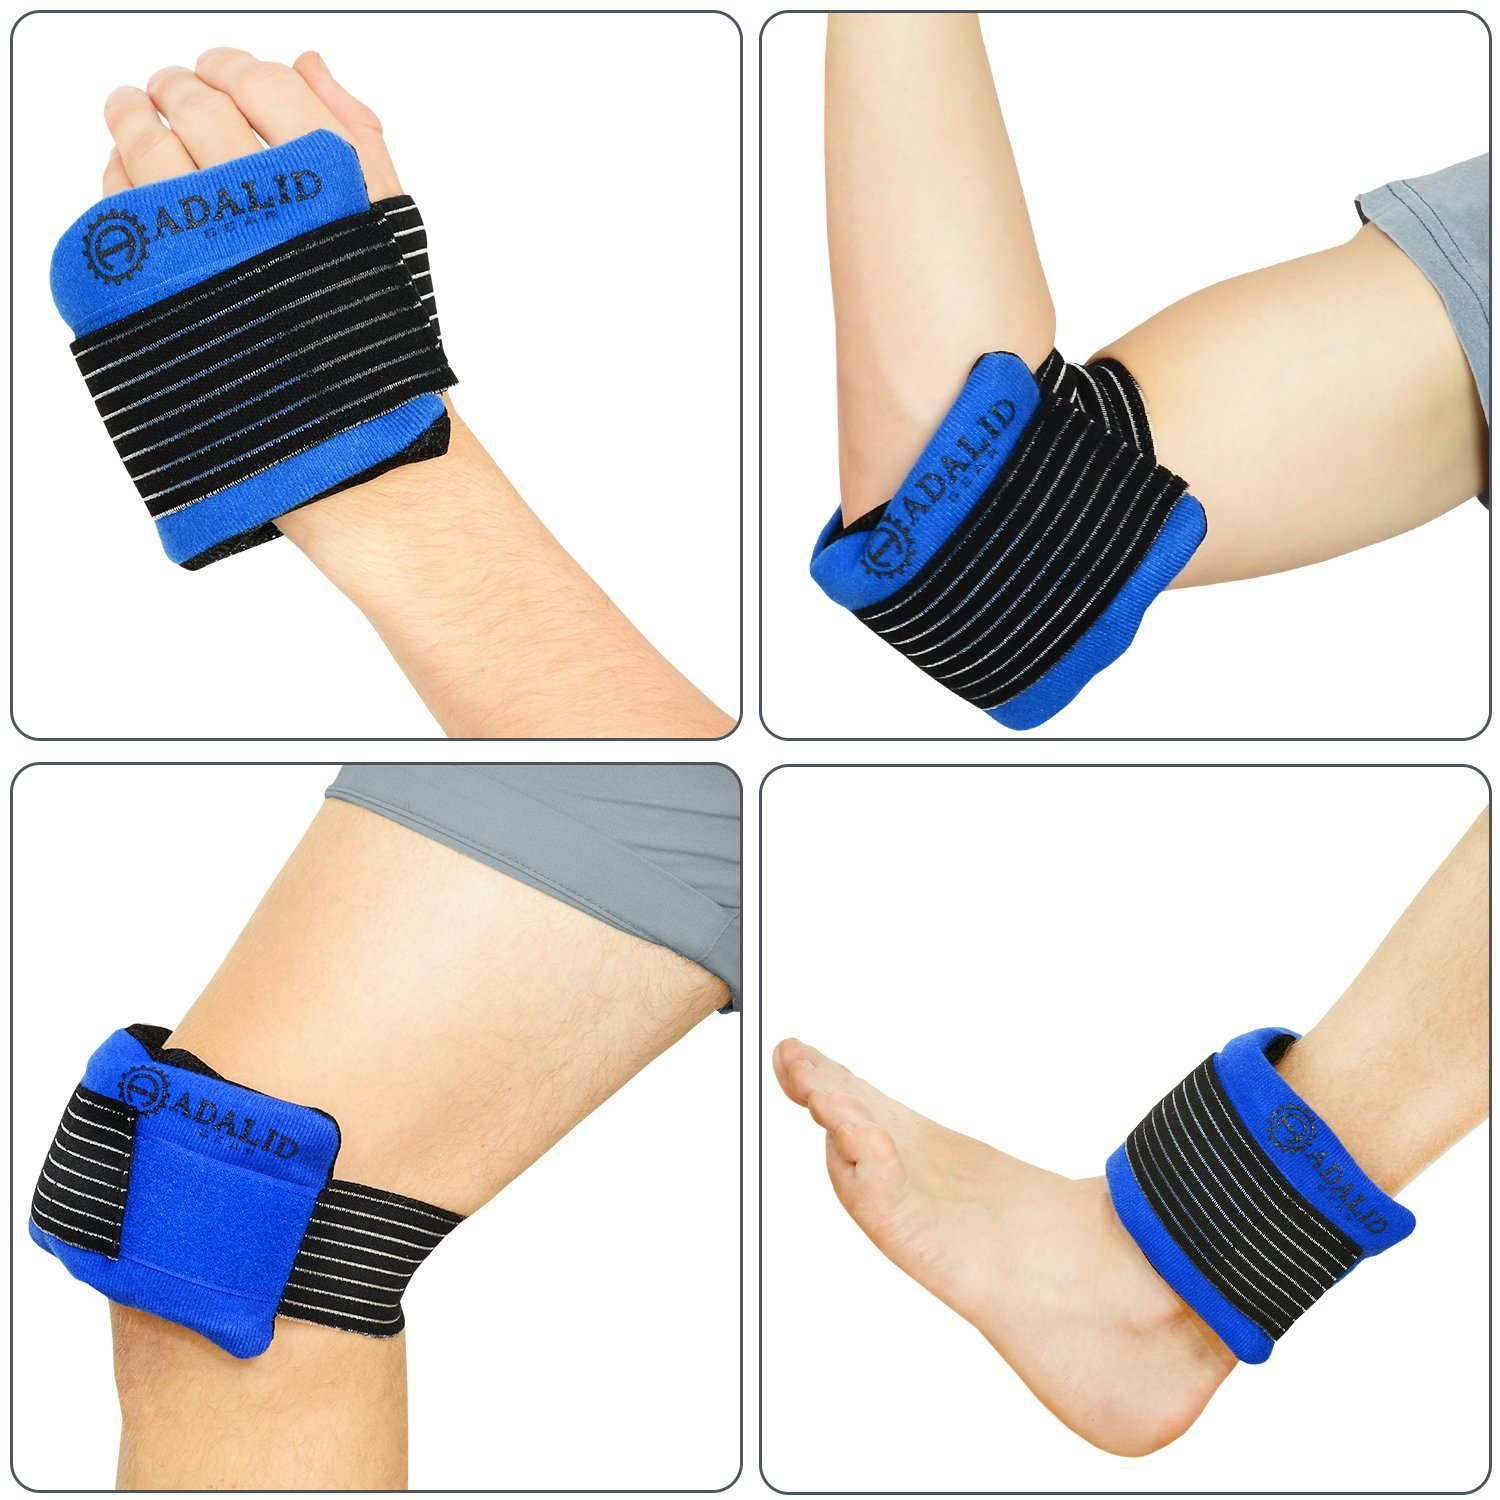 ice-pack-cold-hot-therapy-pain-relief-sports-injury-aches-reusable-first-aid-gel-4